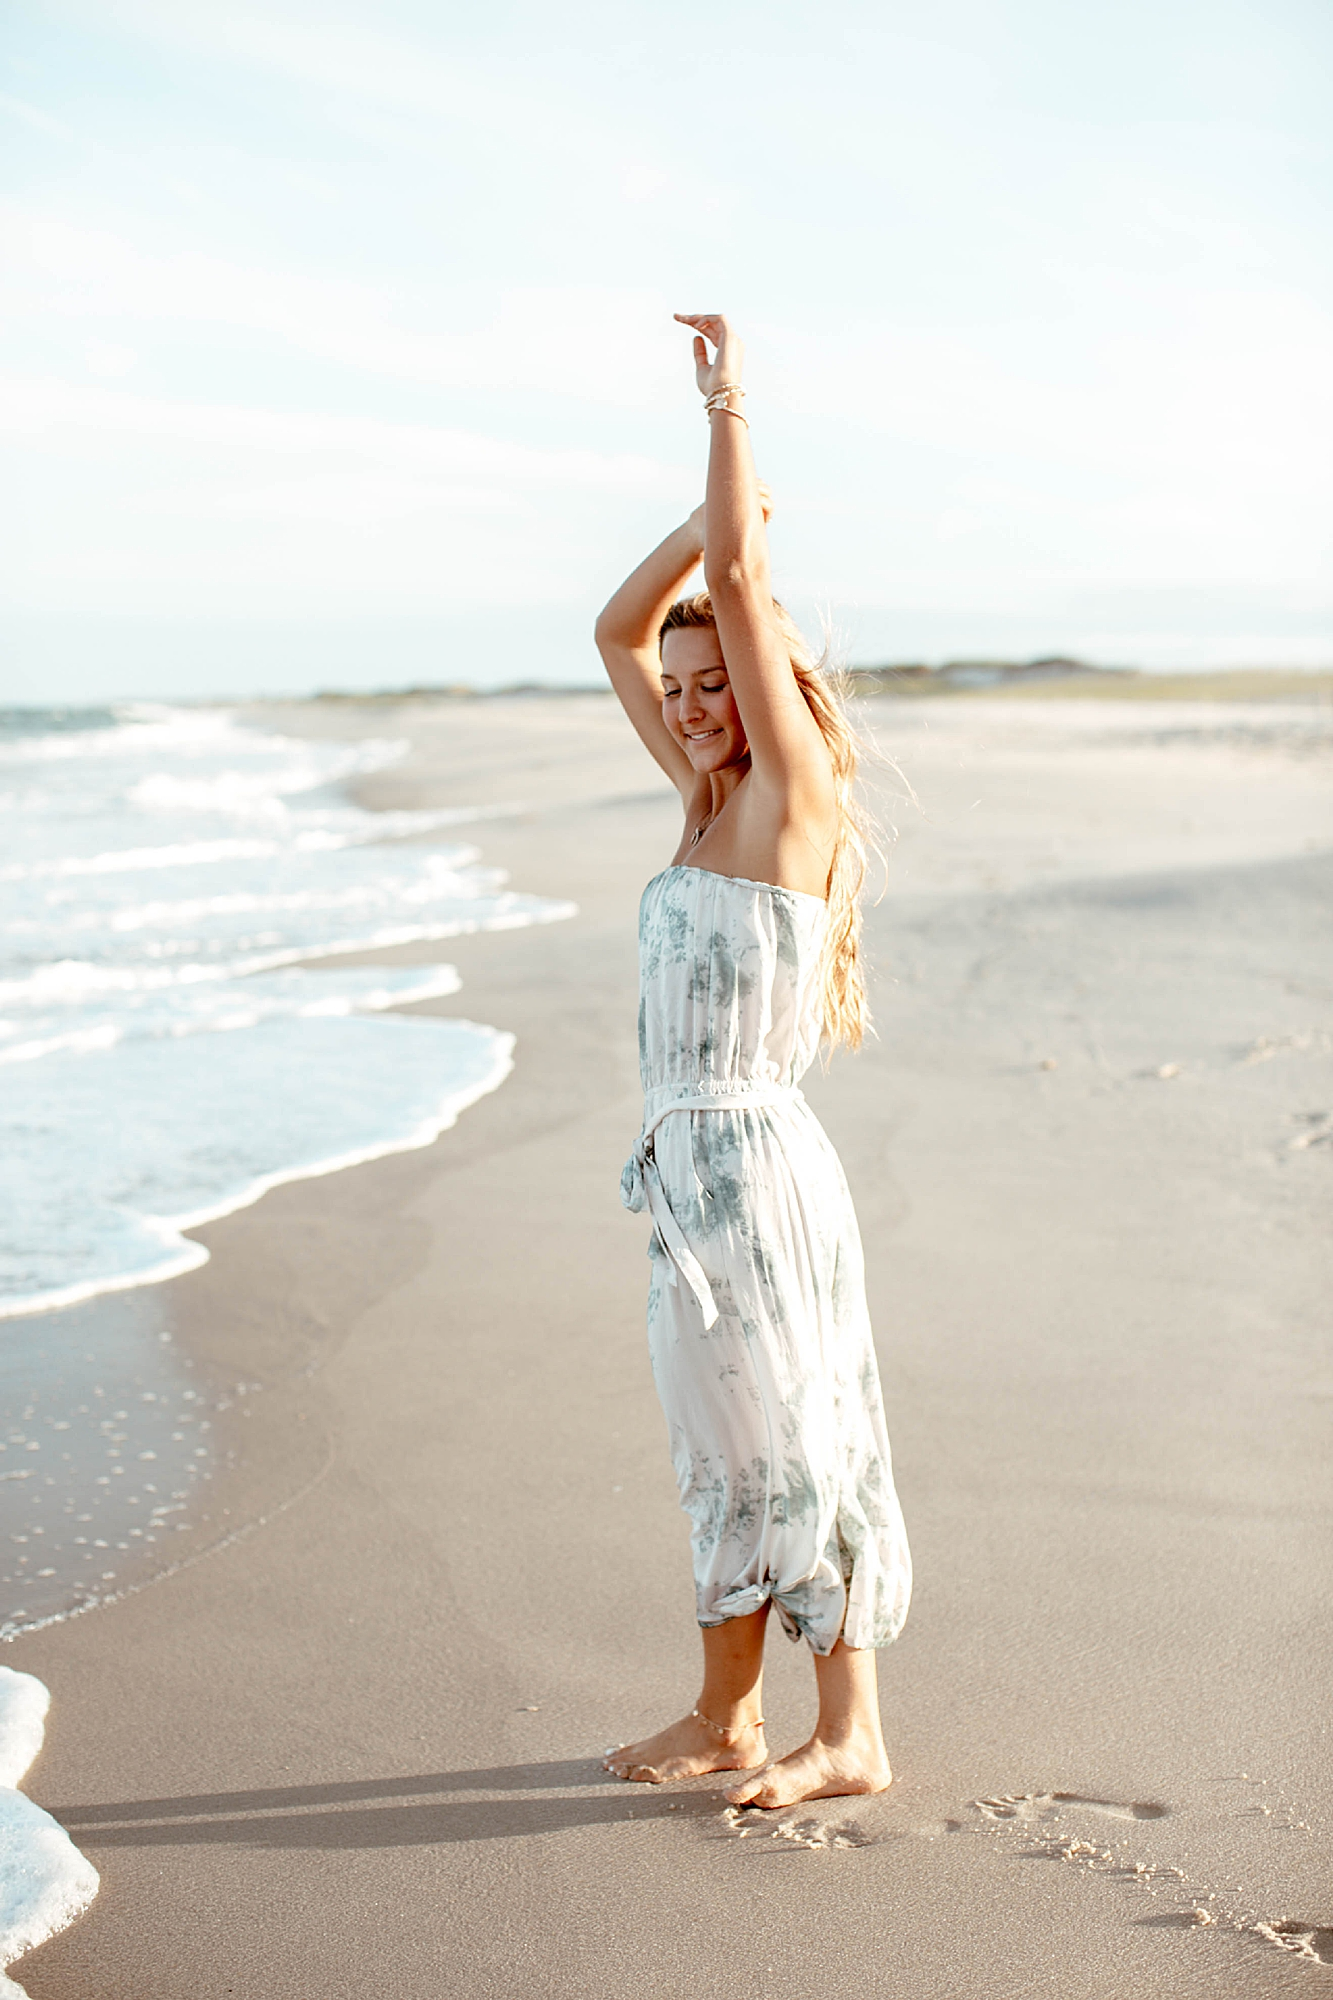 Natural and Bright Seaside Park New Jersey Boho Lifestlyle Beach Portrait Photography by Kelee Bovelle_0016.jpg